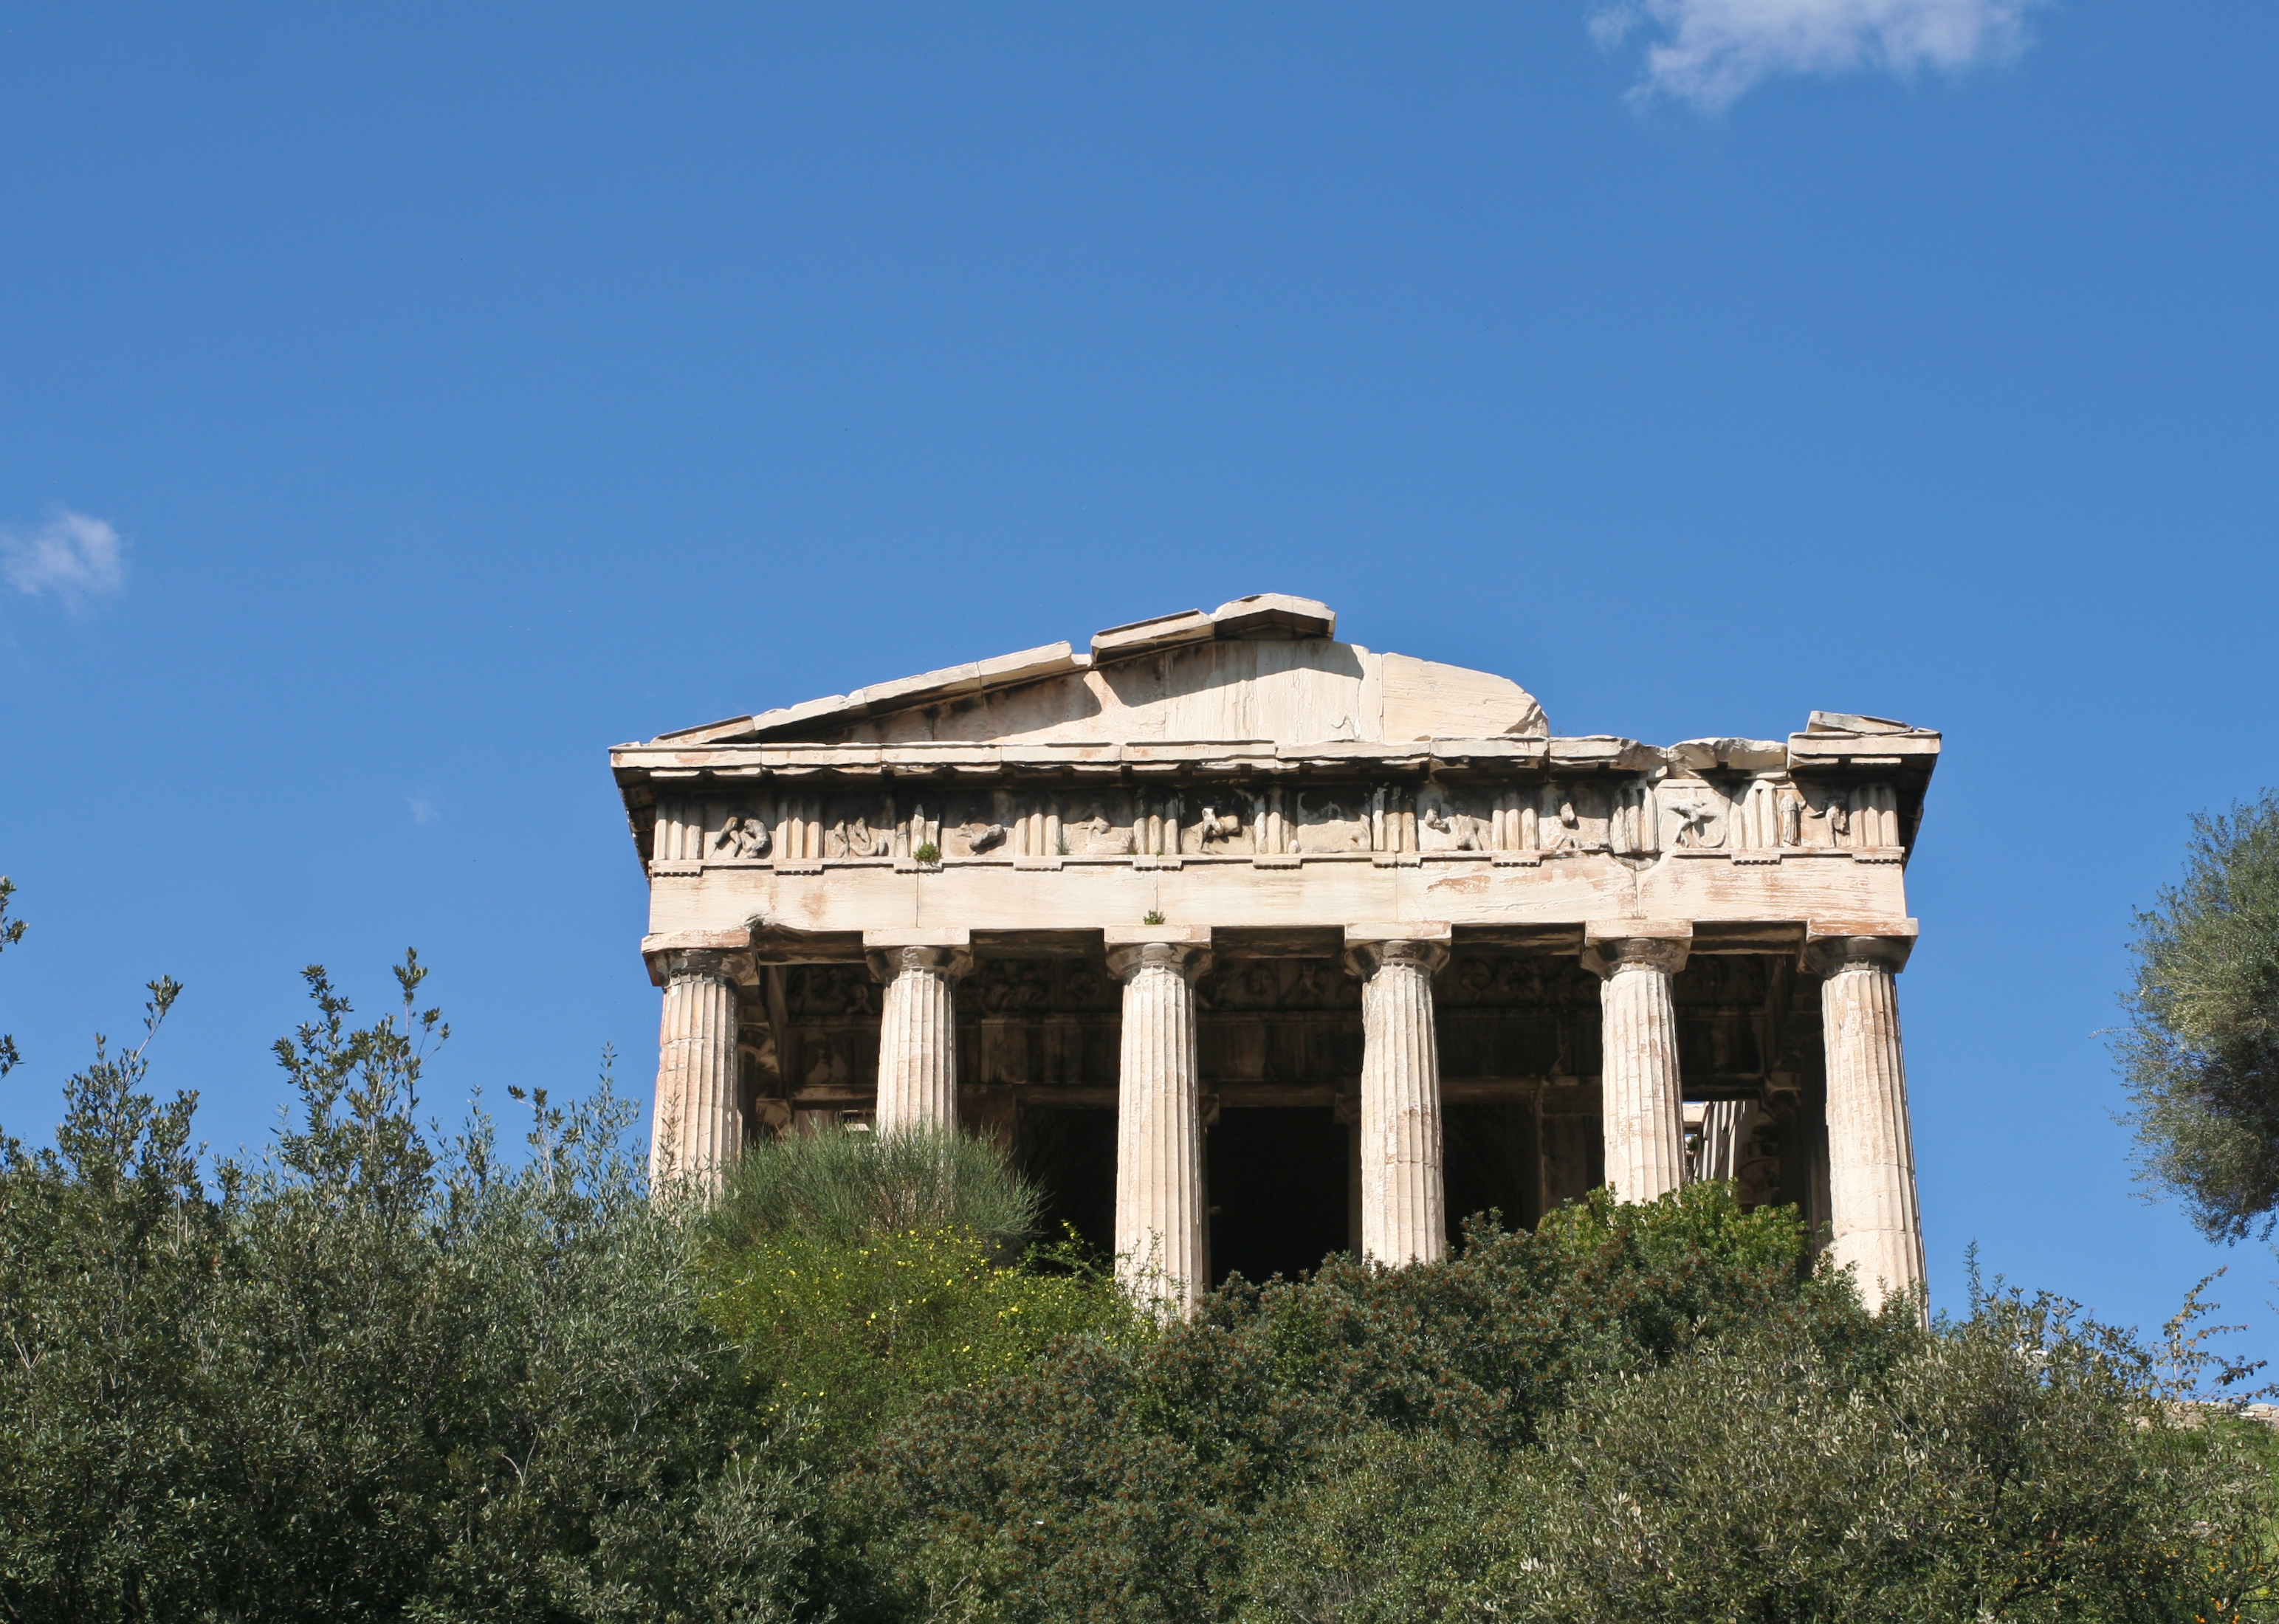 File:Temple of Hephaestus and Athena Ergane.jpg - Wikimedia Commons